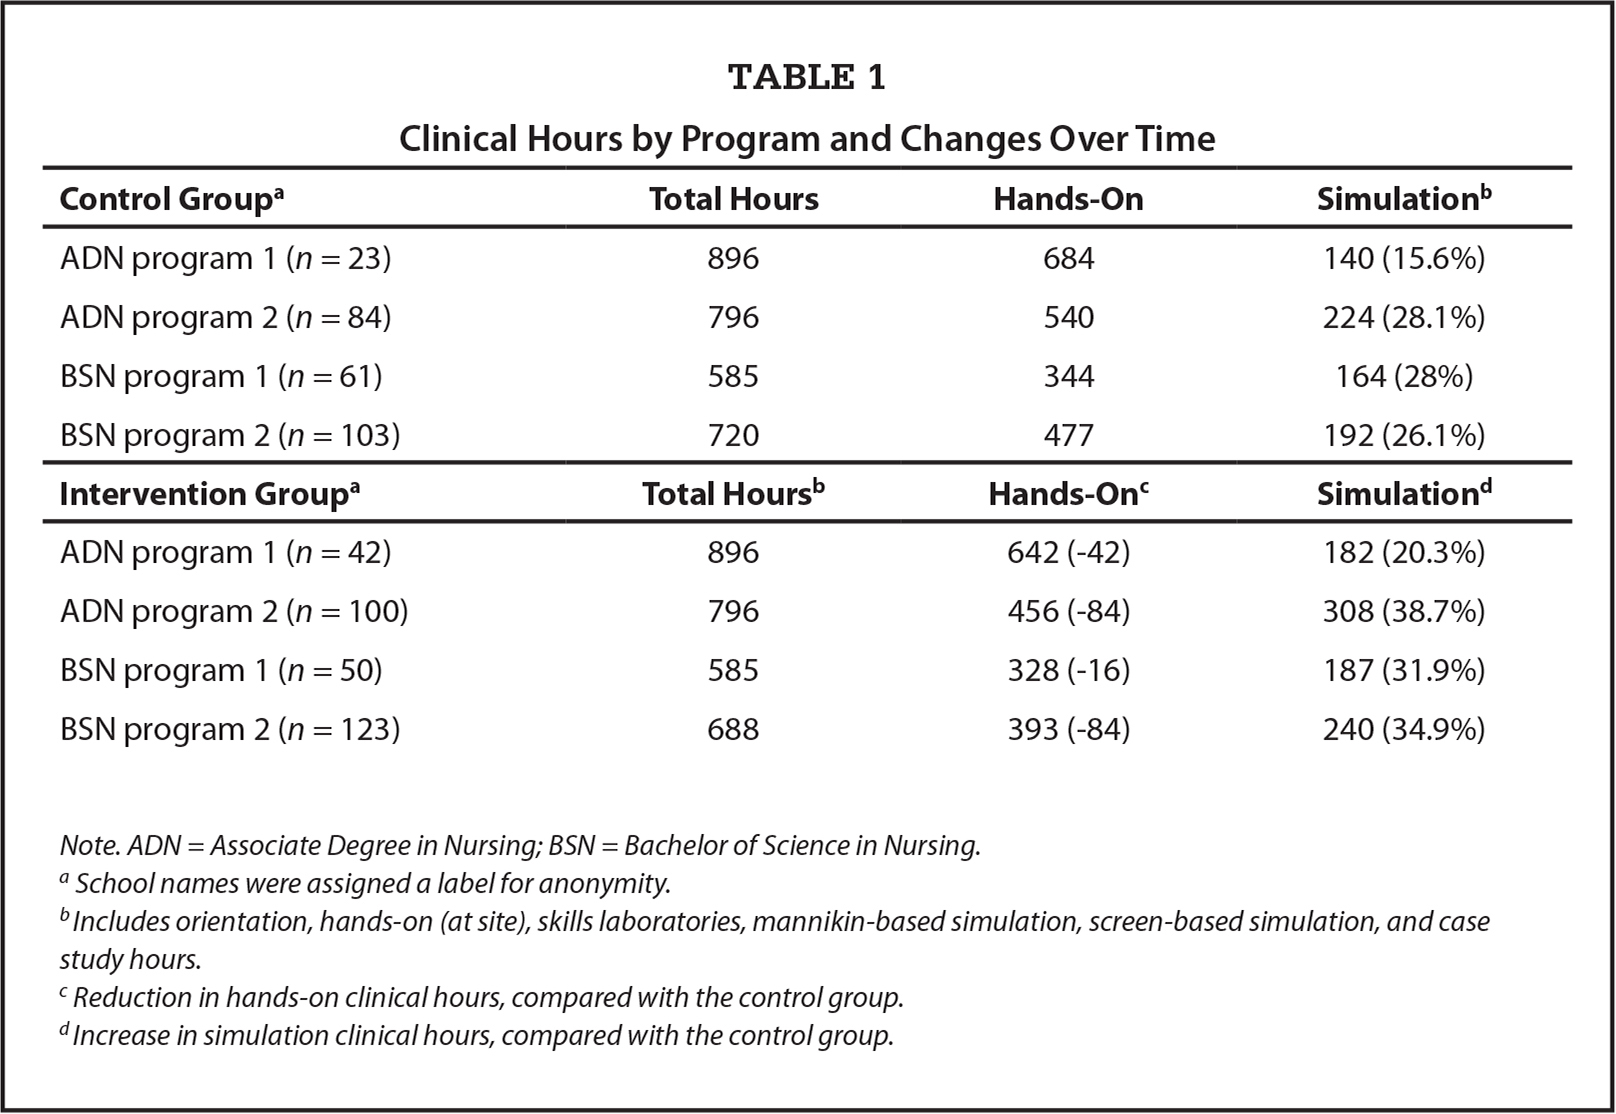 Clinical Hours by Program and Changes Over Time